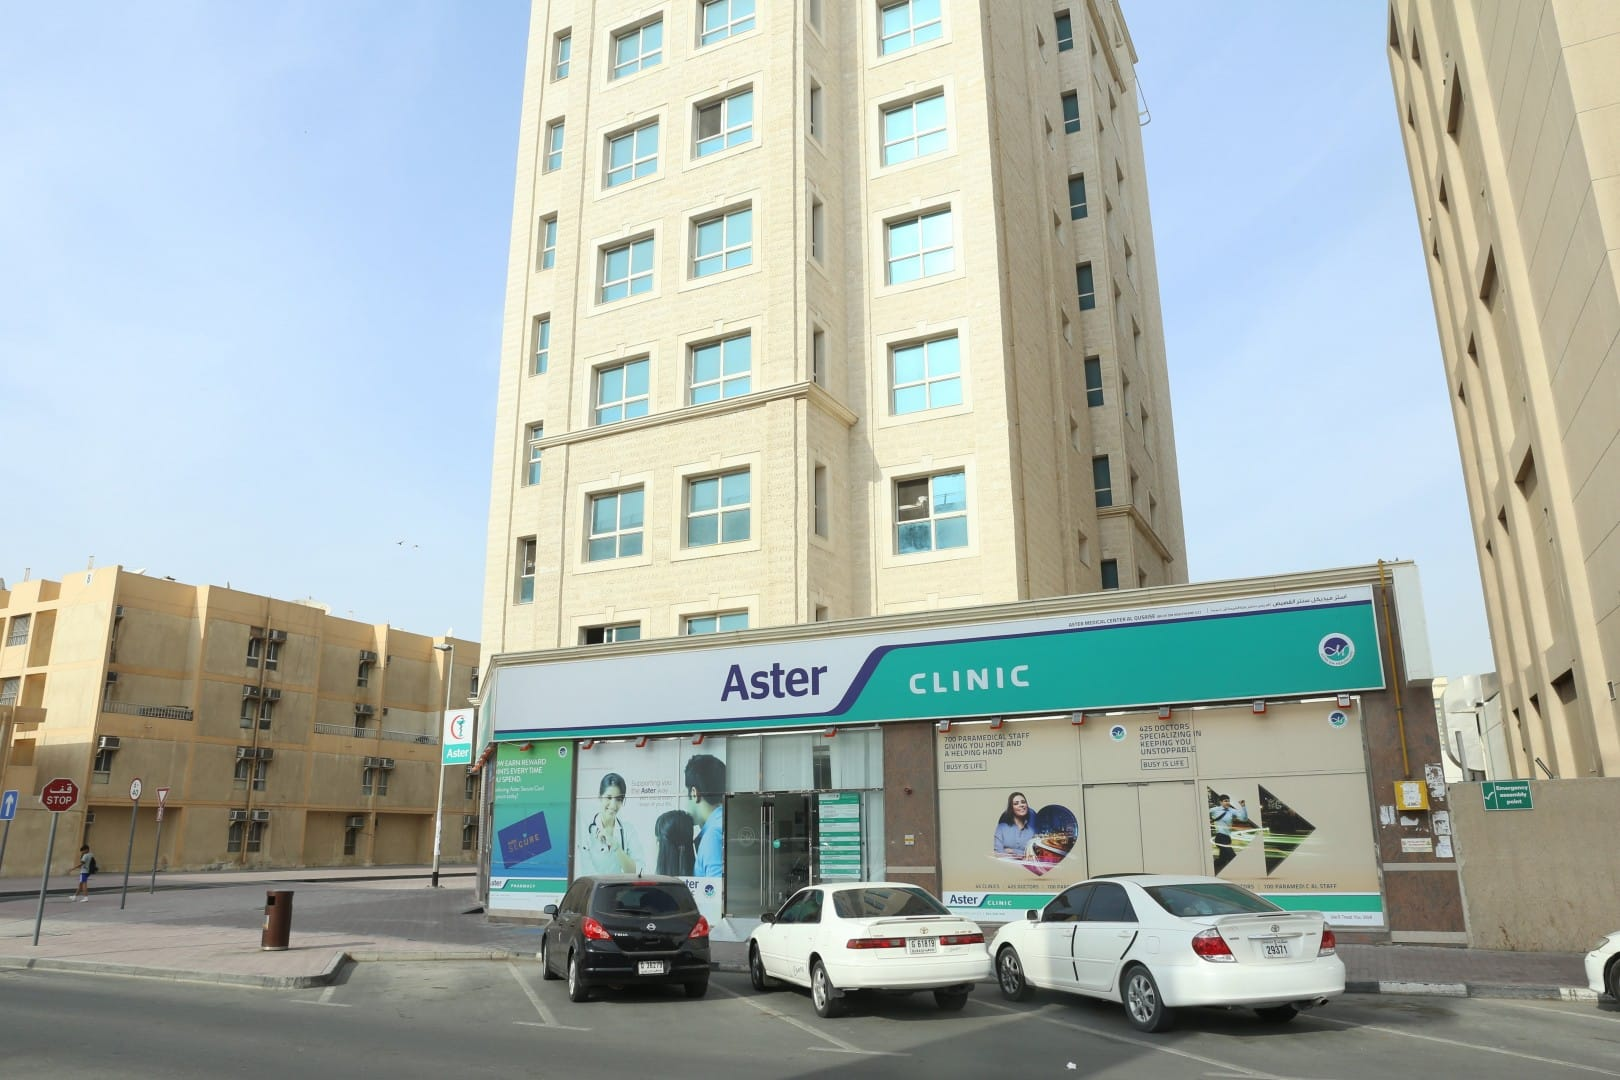 Aster clinic near me